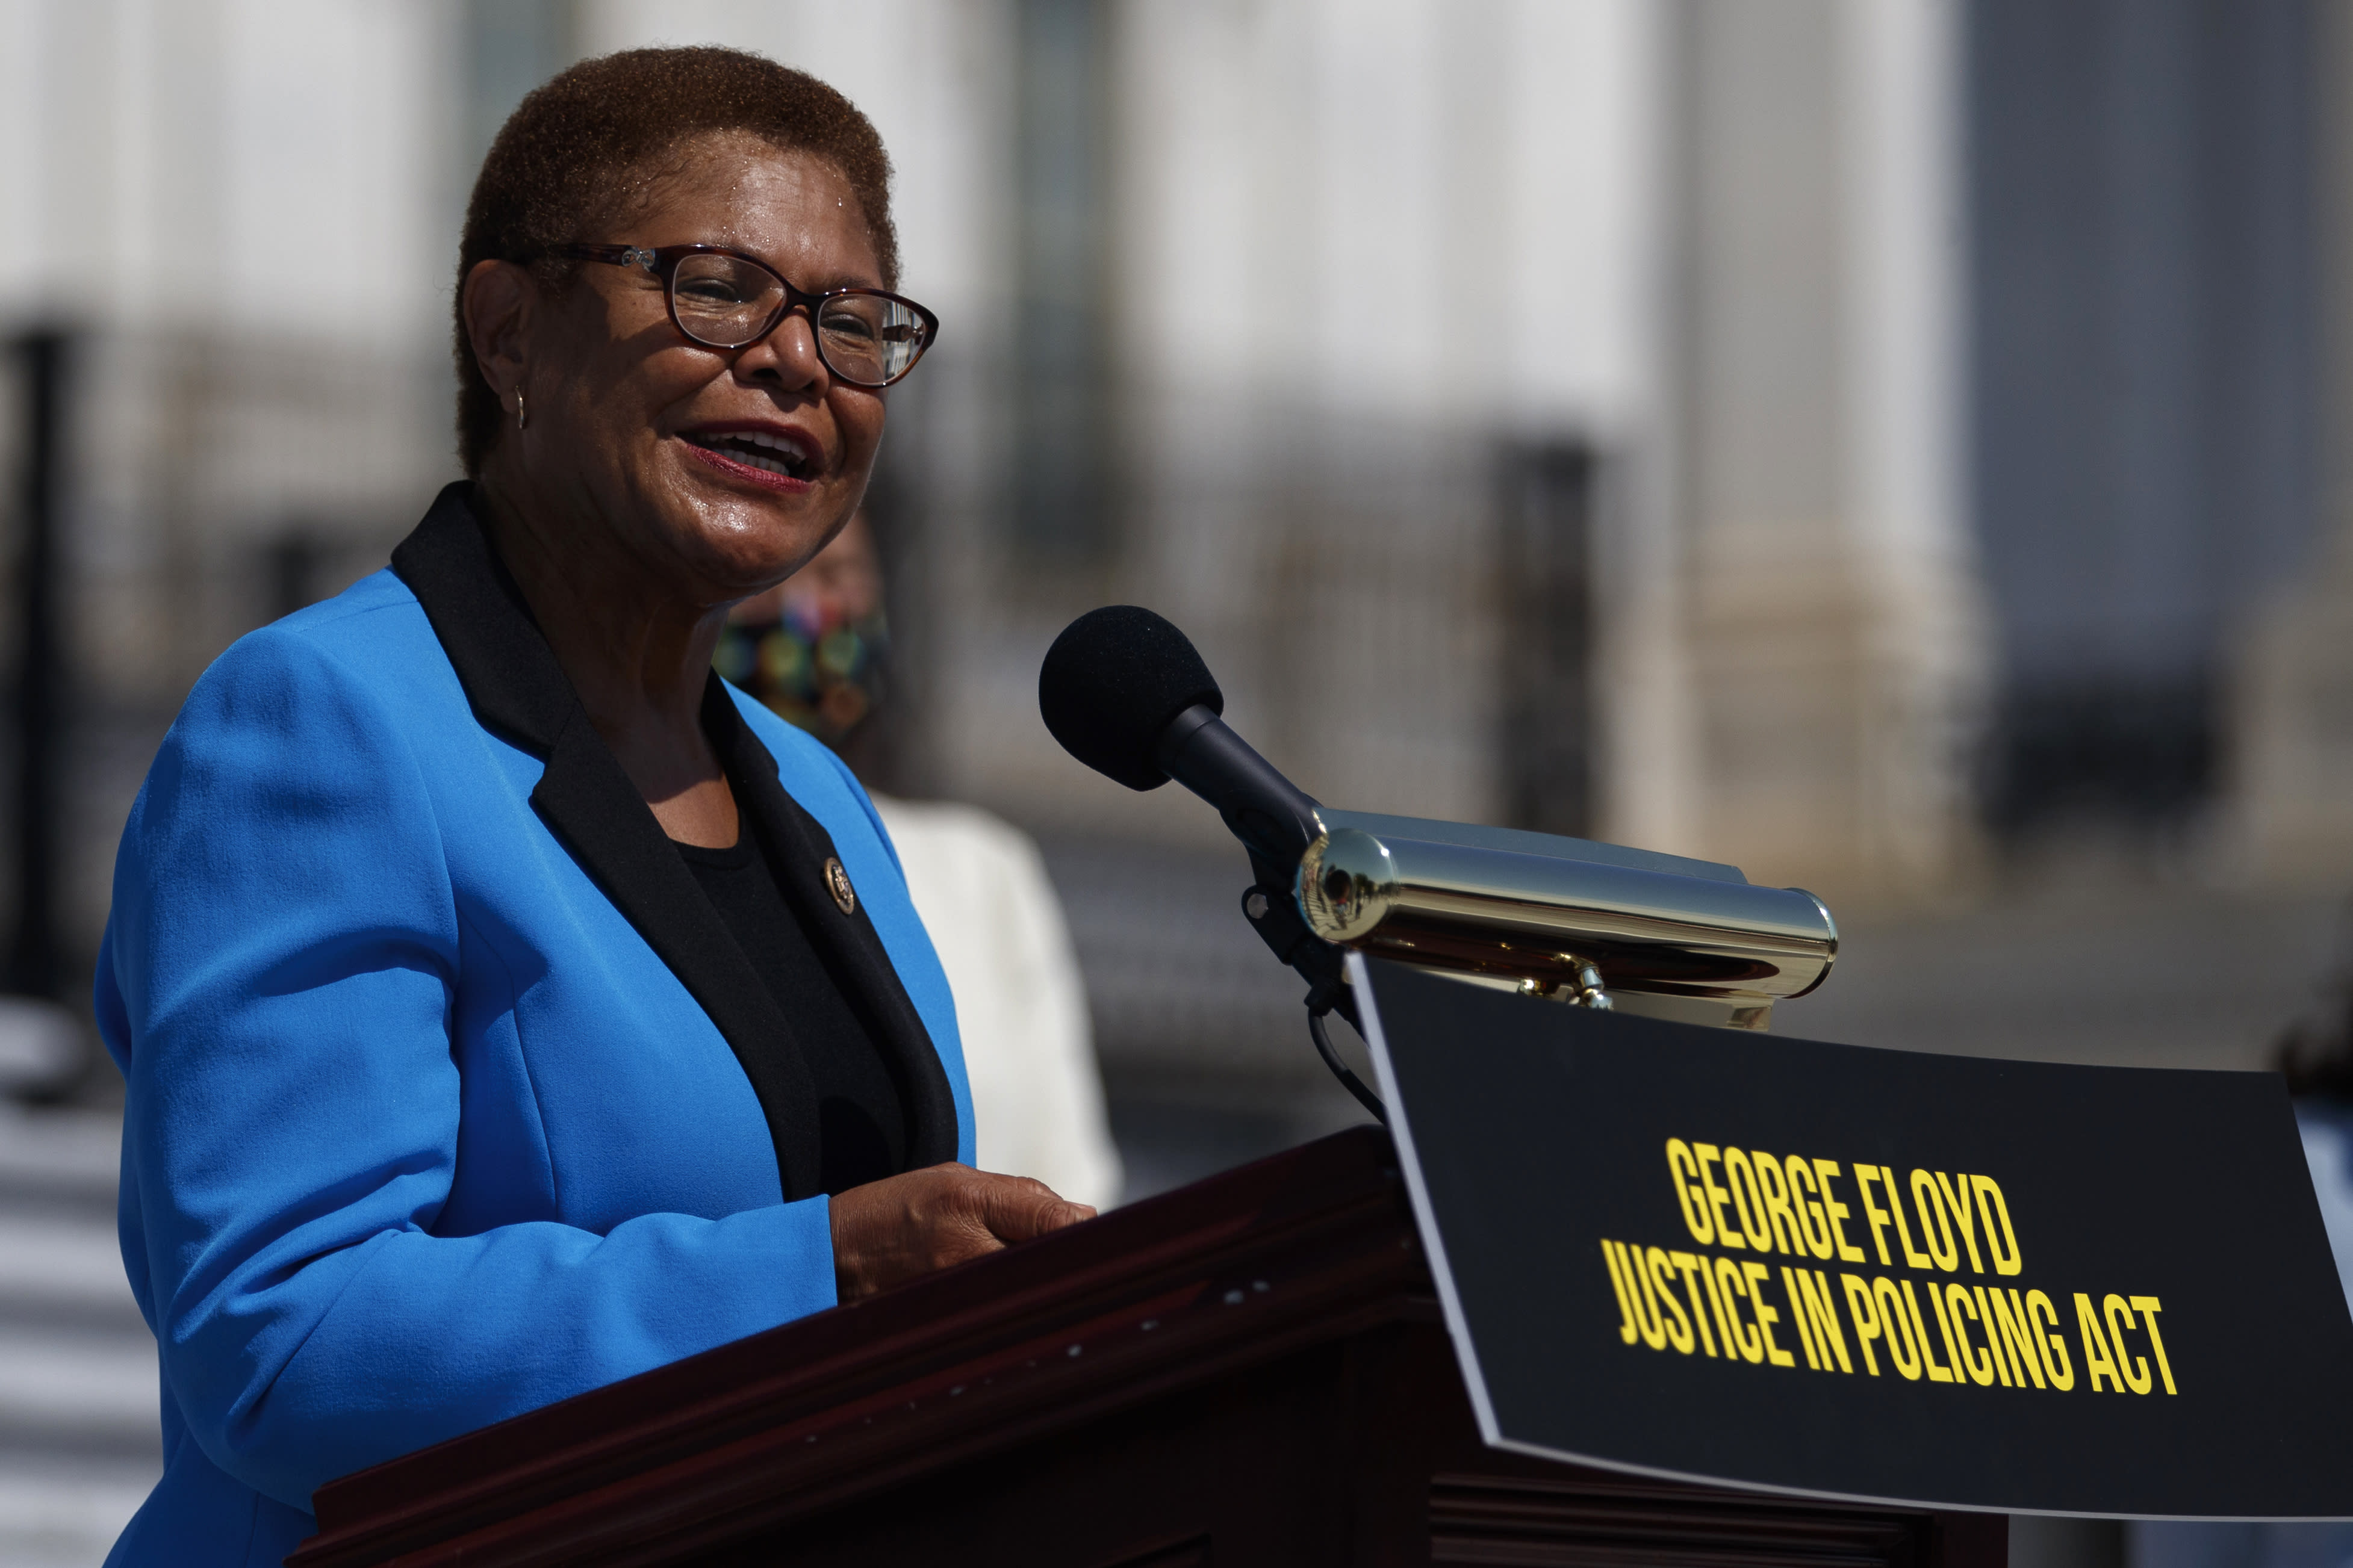 FILE - In this June 25, 2020, file photo Rep. Karen Bass, D-Calif., speaks during a news conference on the House East Front Steps on Capitol Hill in Washington ahead of the House vote on the George Floyd Justice in Policing Act of 2020. California Congresswoman Bass has emerged a leading contender to be Democrats' vice presidential candidate. Allies say her reputation as a bridge-builder would make her a strong partner to presumptive Democratic presidential nominee. (AP Photo/Carolyn Kaster, File)